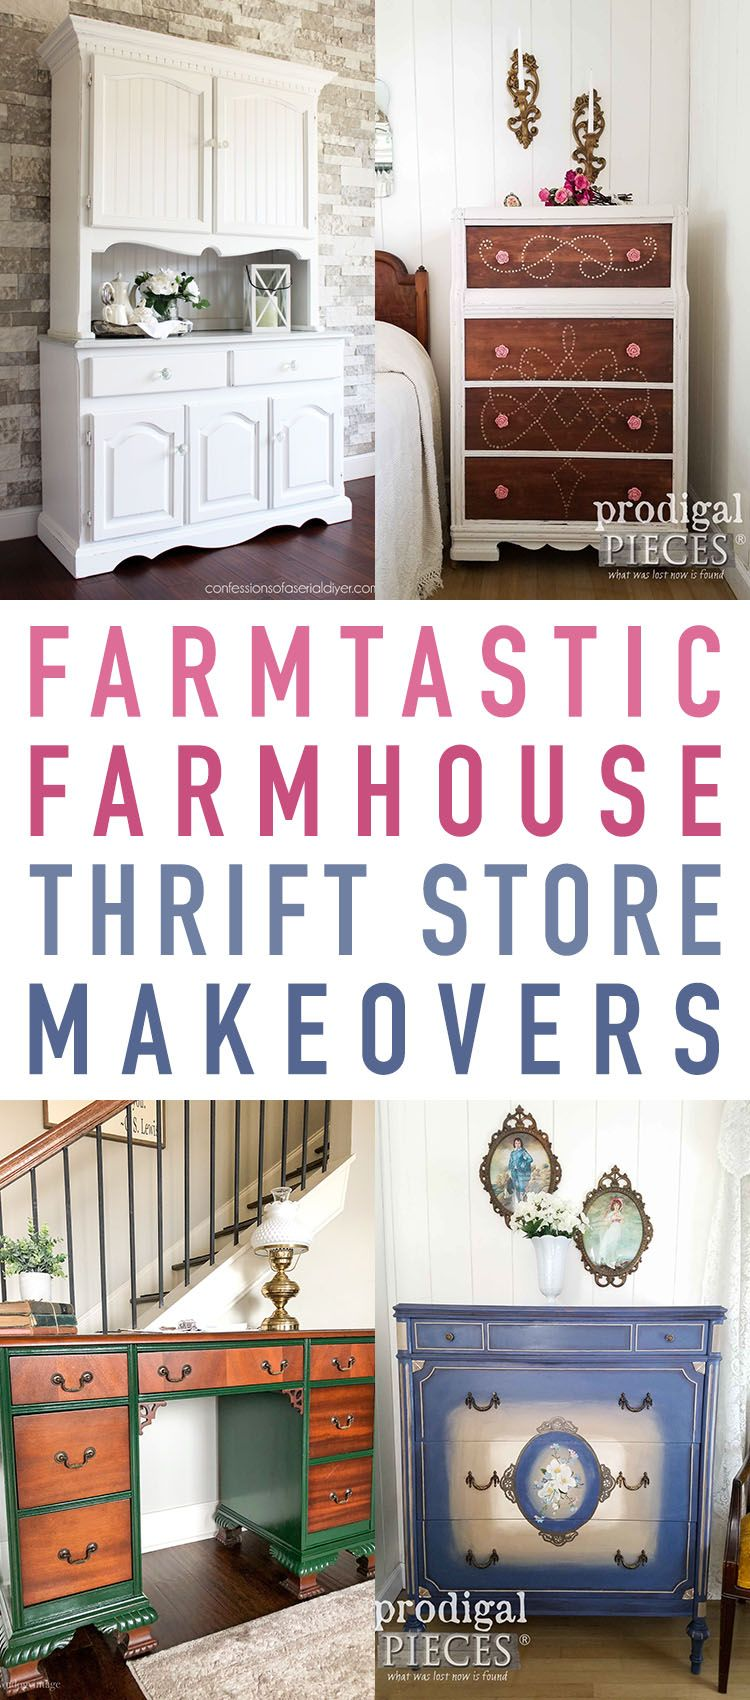 Farmtastic Farmhouse Thrift Store Makeovers The Cottage Market Thrift Store Makeover Thrift Store Crafts Furniture Makeover